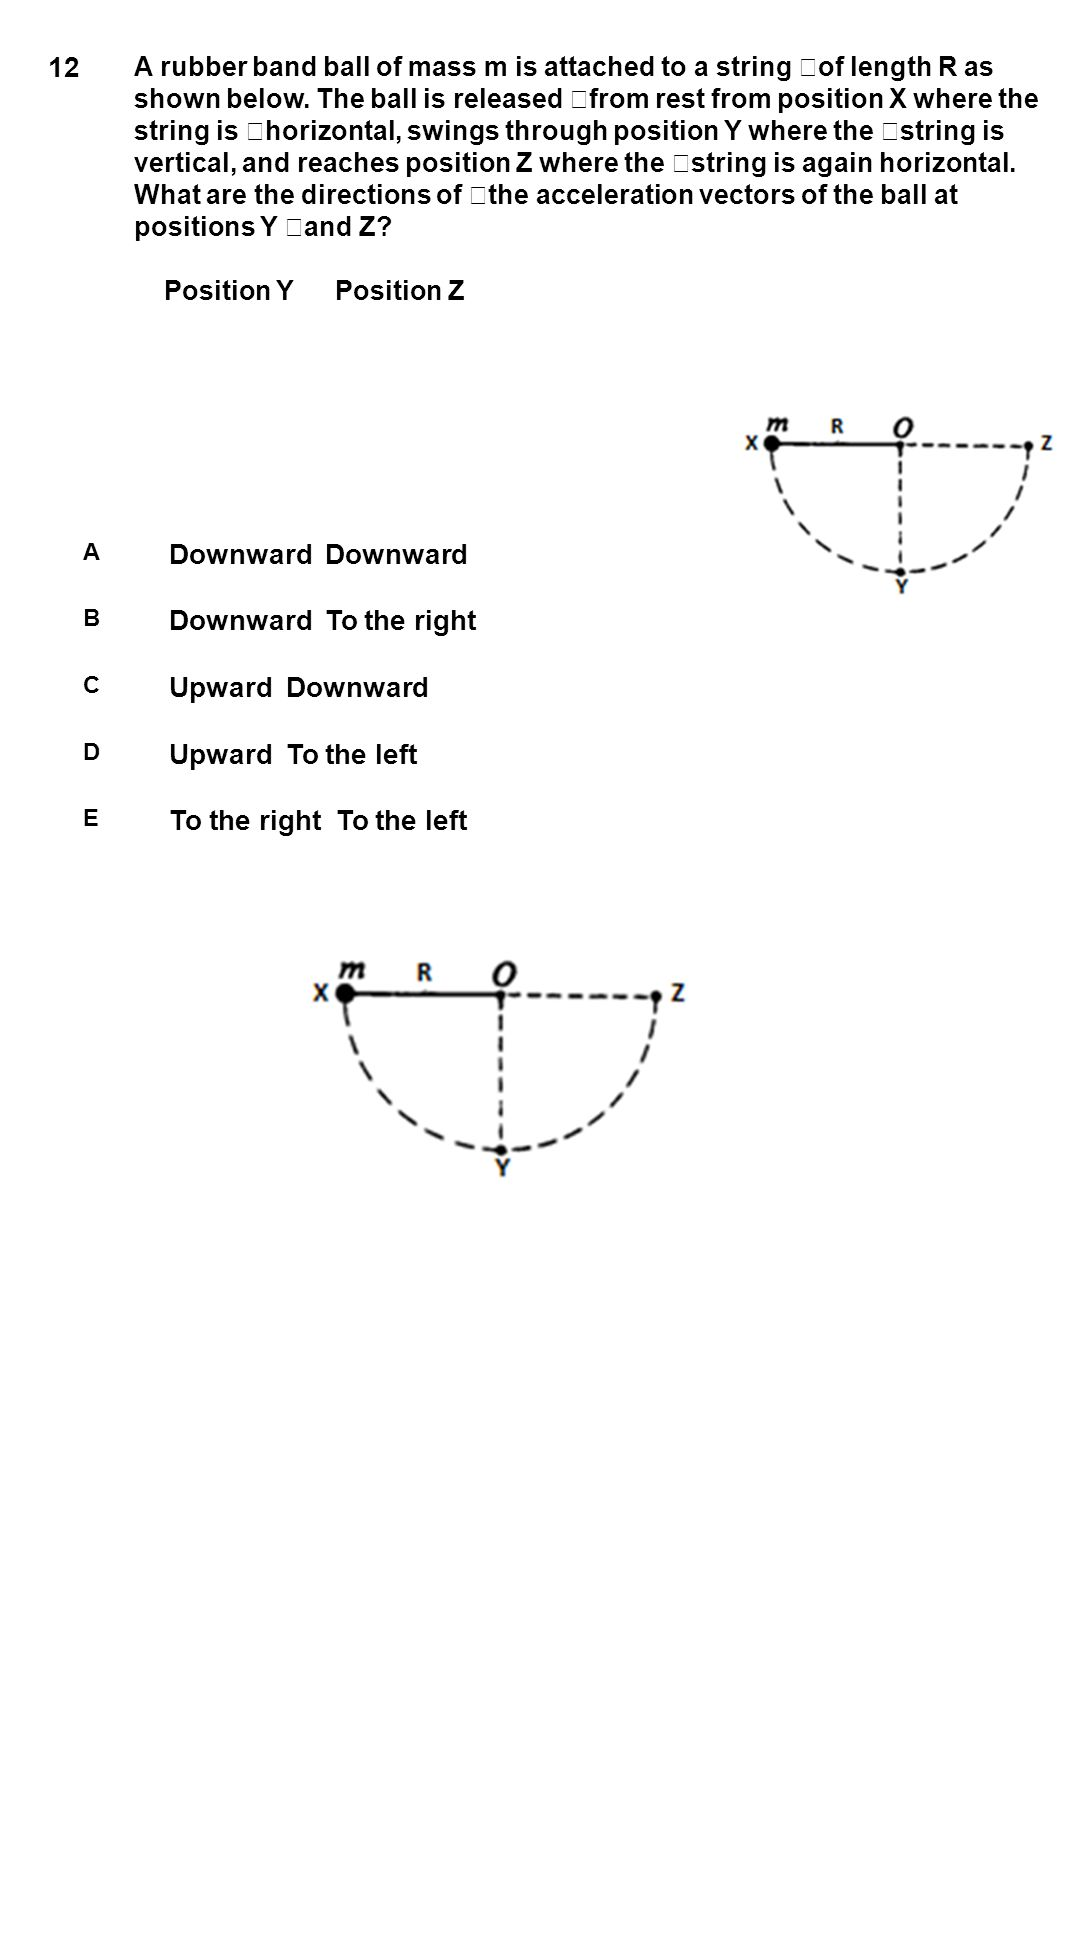 12 A rubber band ball of mass m is attached to a string of length R as shown below. The ball is released from rest from position X where the string is